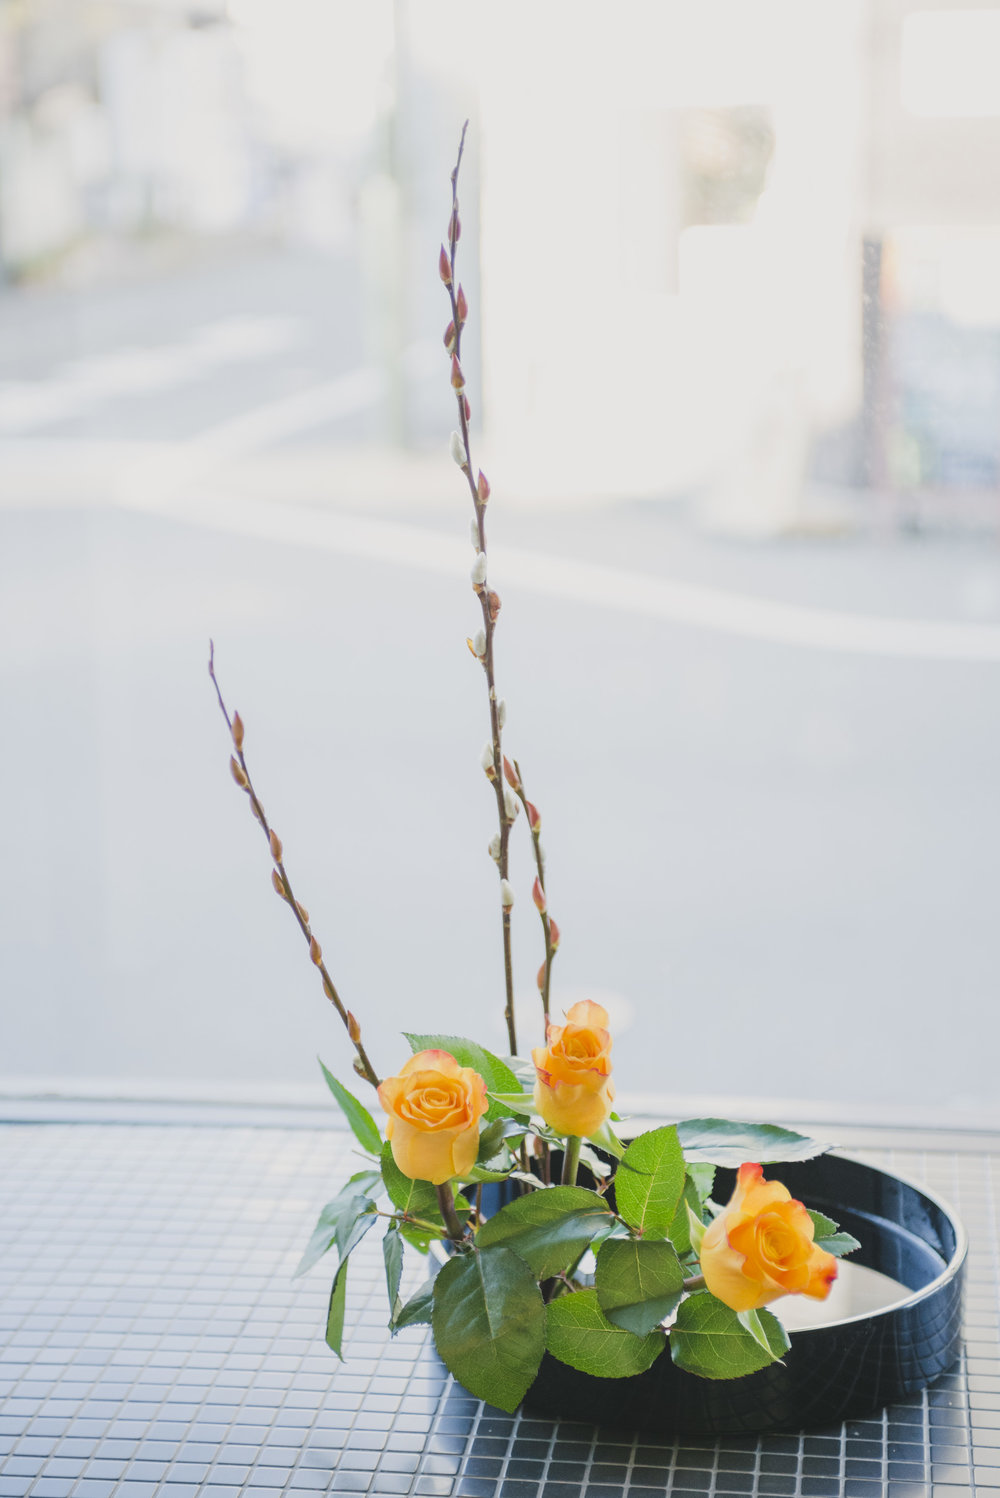 Learn the living language of flowers at an Ikebana atelier. -